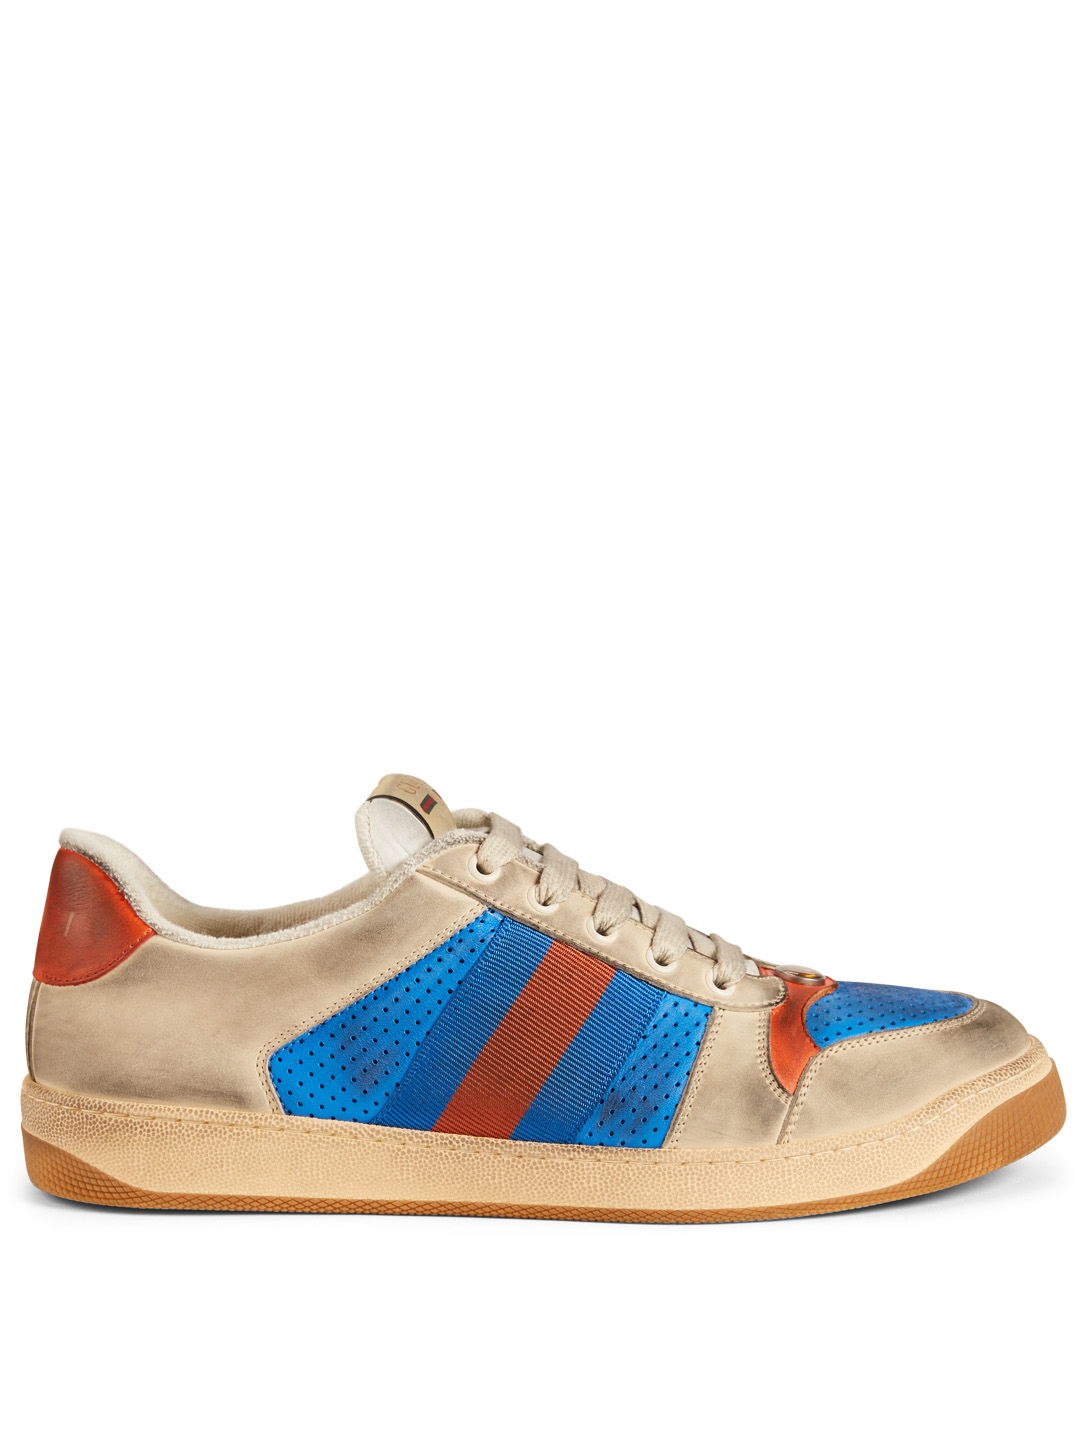 GUCCI Screener Leather Sneakers Men's Blue